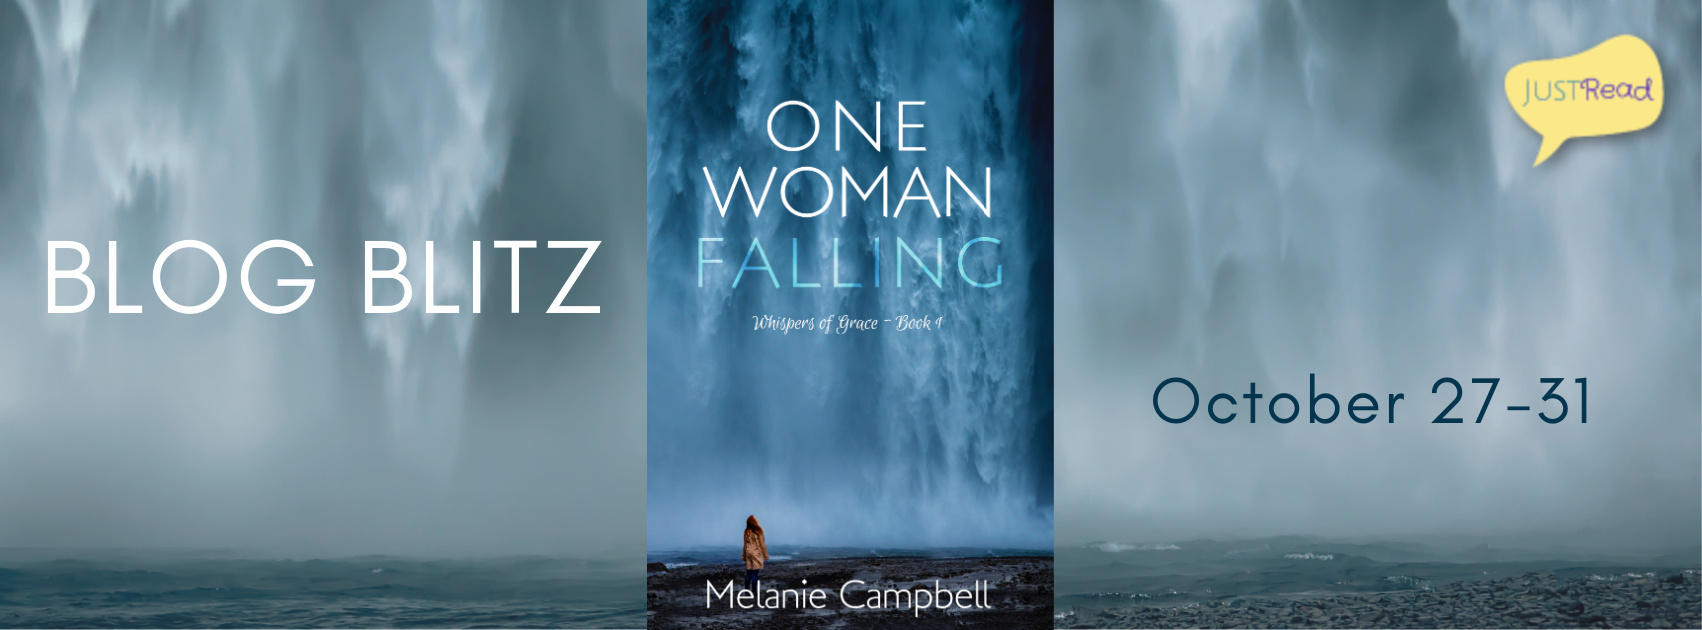 Welcome to the One Woman Falling Blog Blitz & Giveaway!